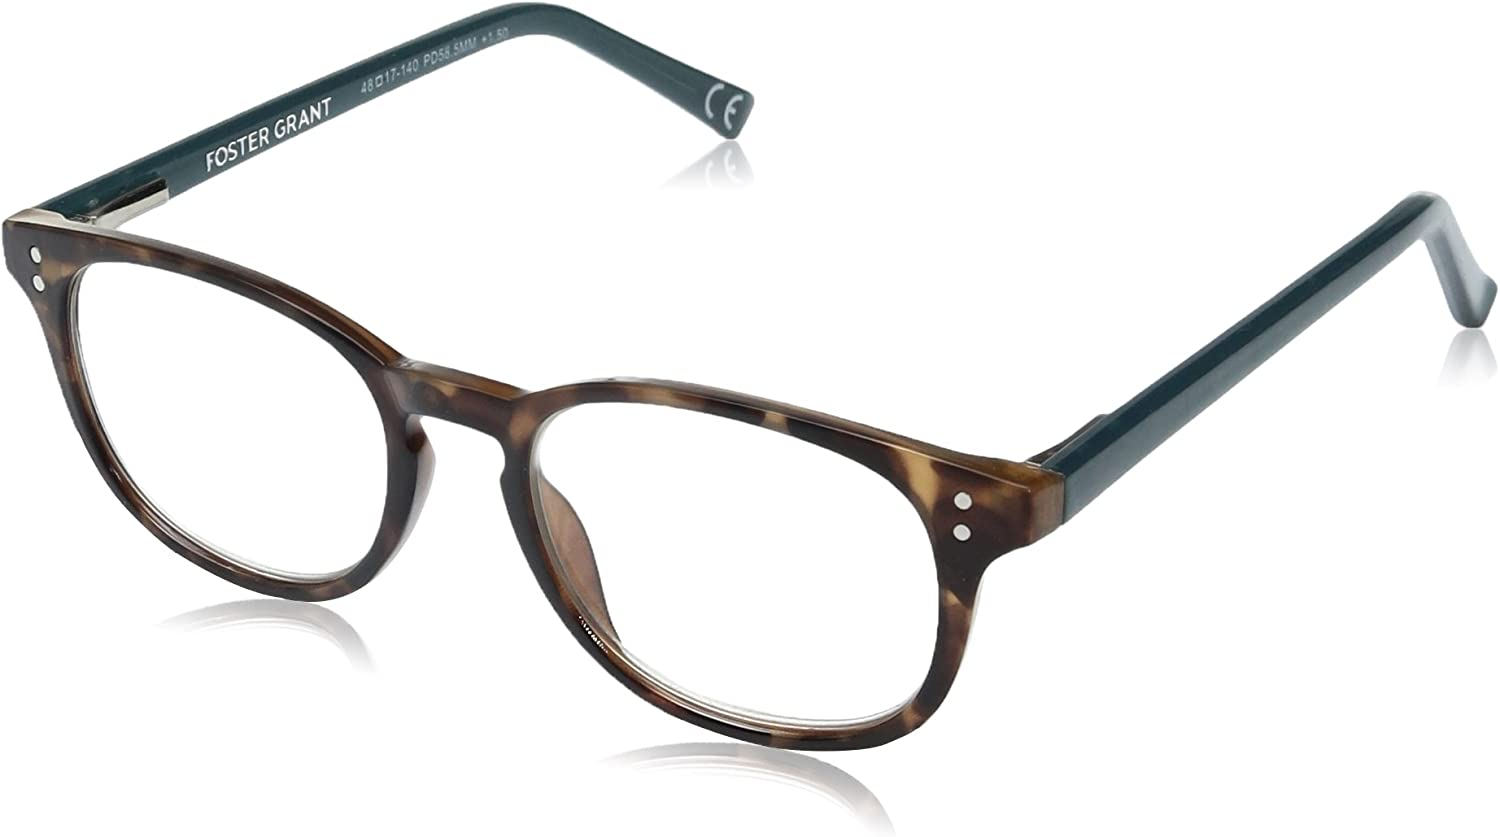 Foster Grant Women's Elodie Round Reading Glasses